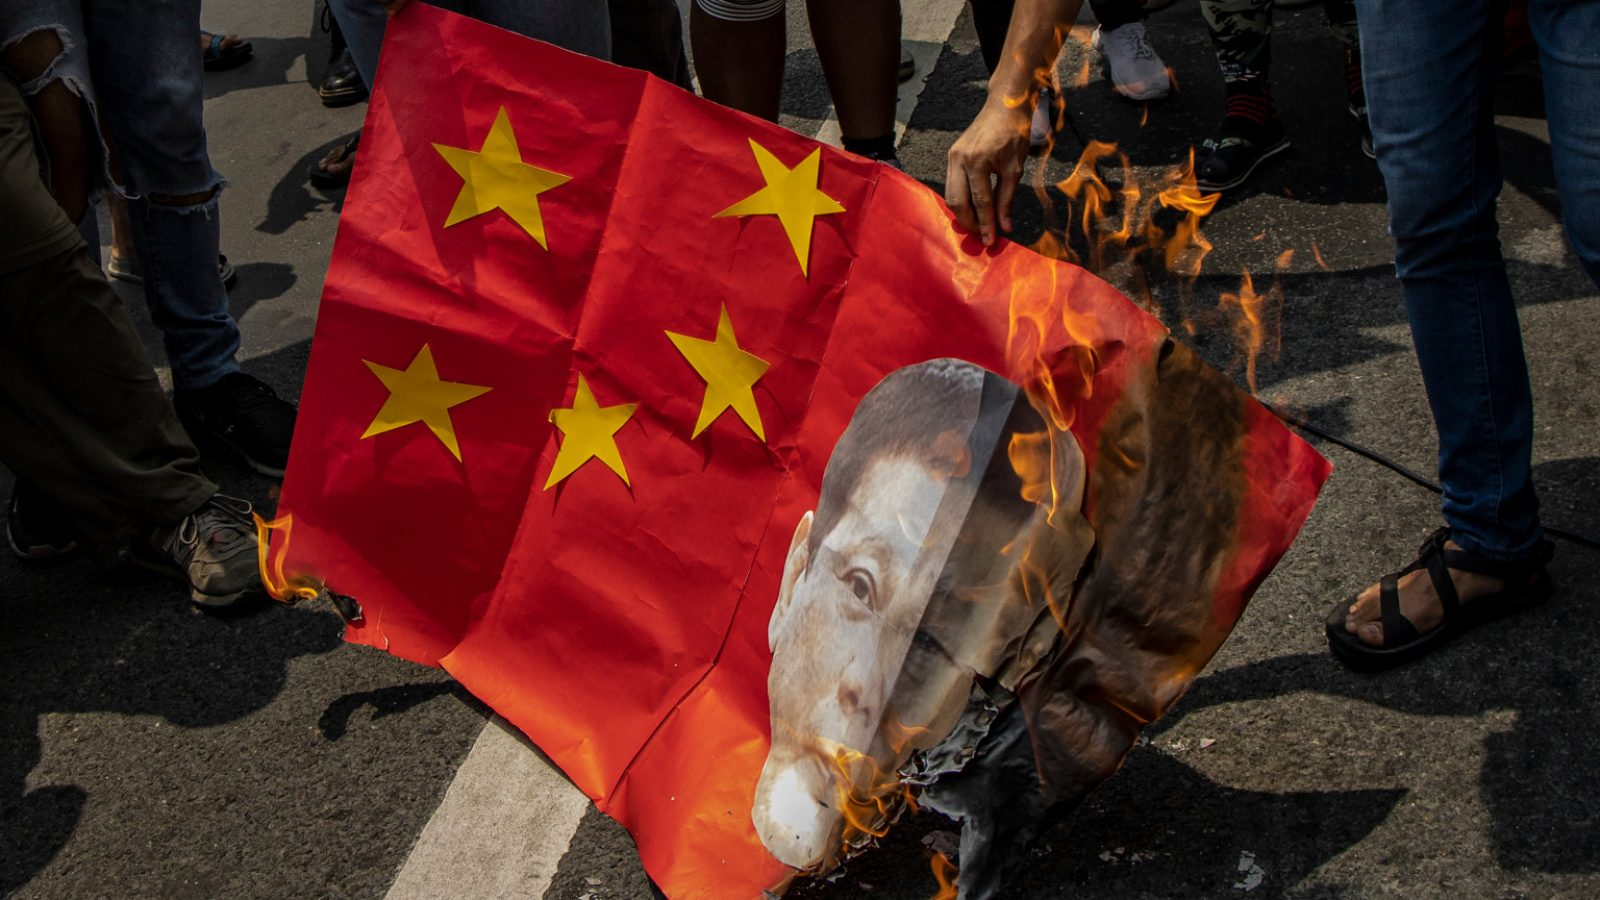 A mock Chinese flag with Rodrigo Duterte's face is burned by protestors on the street